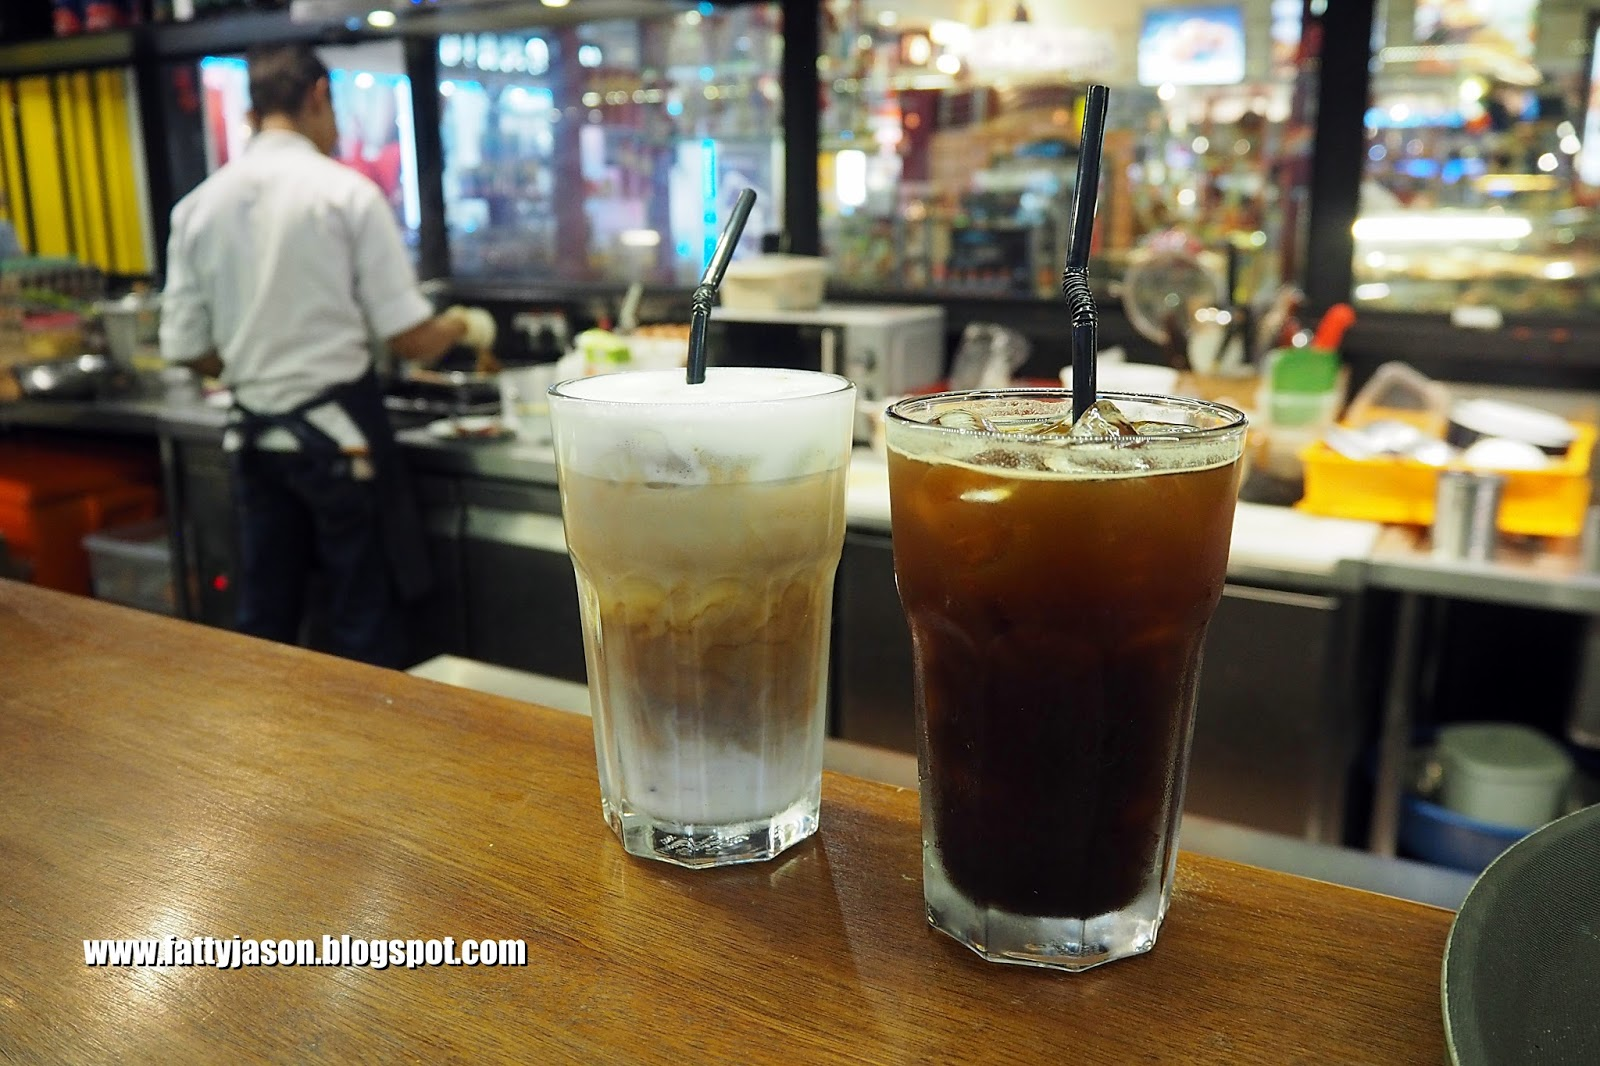 FOOD & Travel: Food: The Morning After @ Skypark Terminal